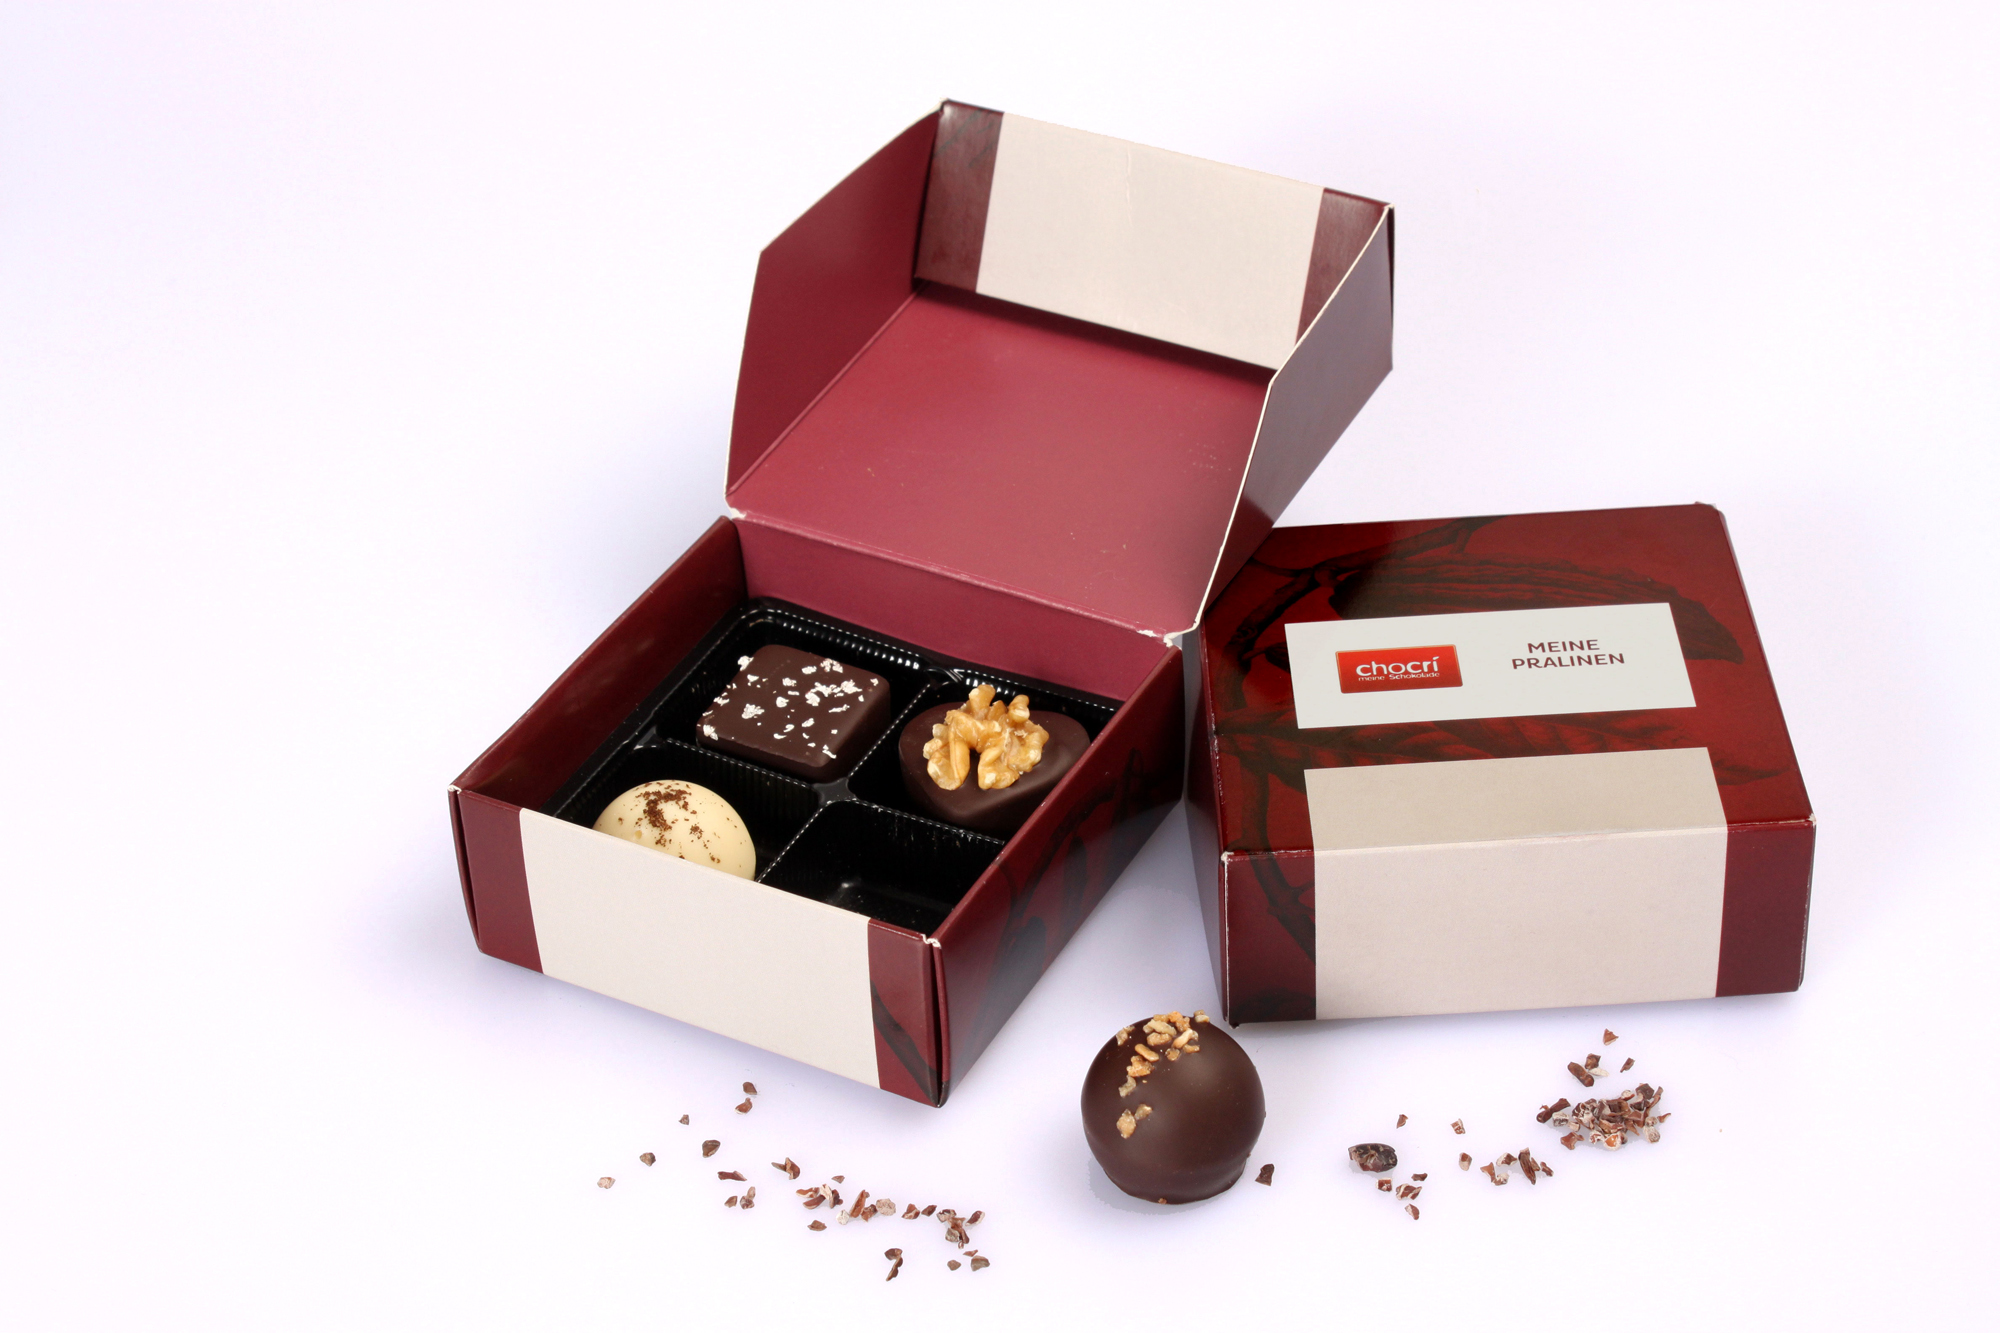 http://media.chocri.de/upload/presse/4er_Pralinenbox_offen_gross.jpg